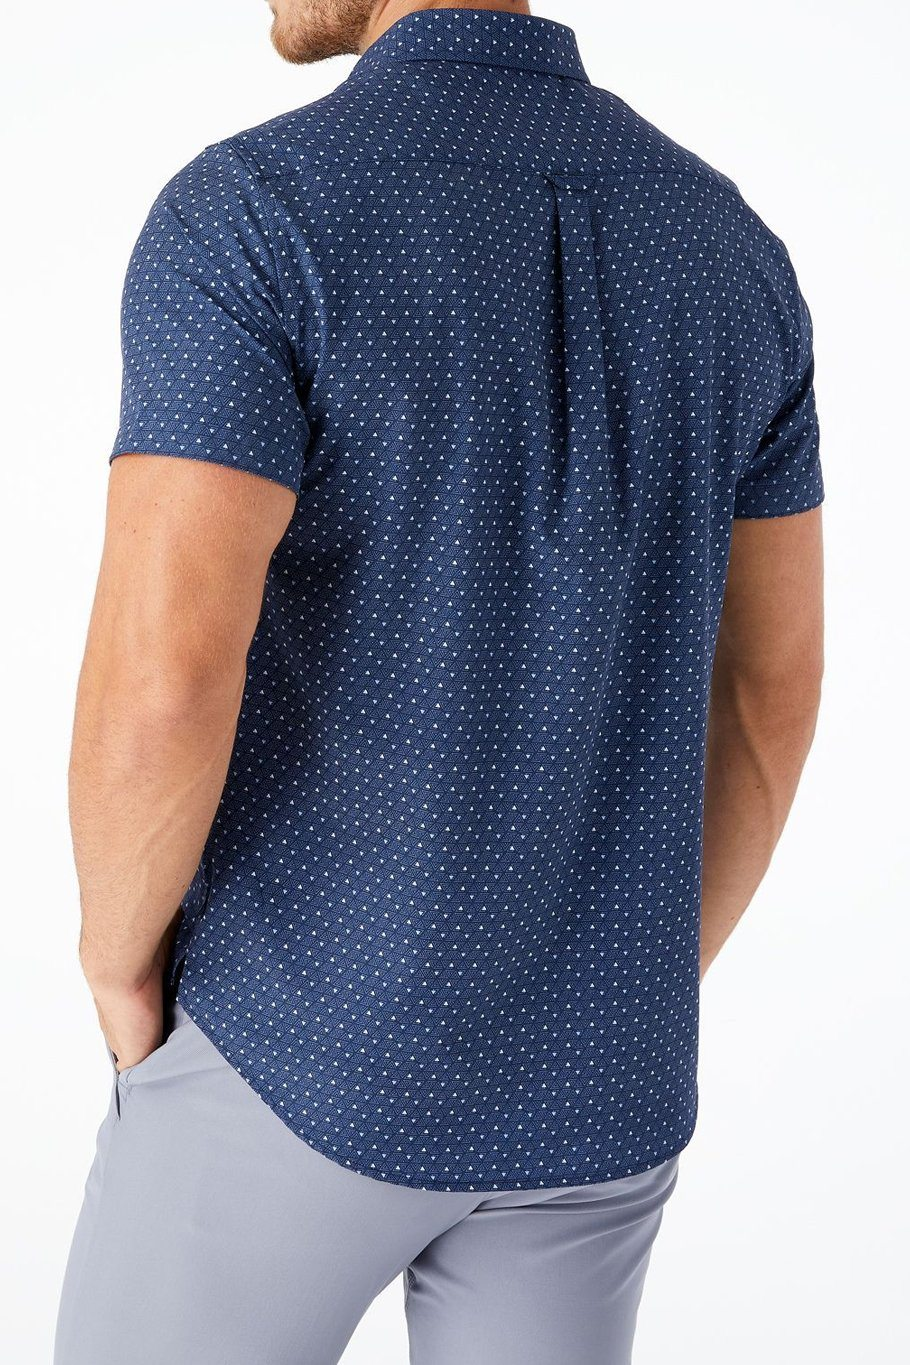 Ups and Downs 4-Way Stretch Shirt - Navy - Shore